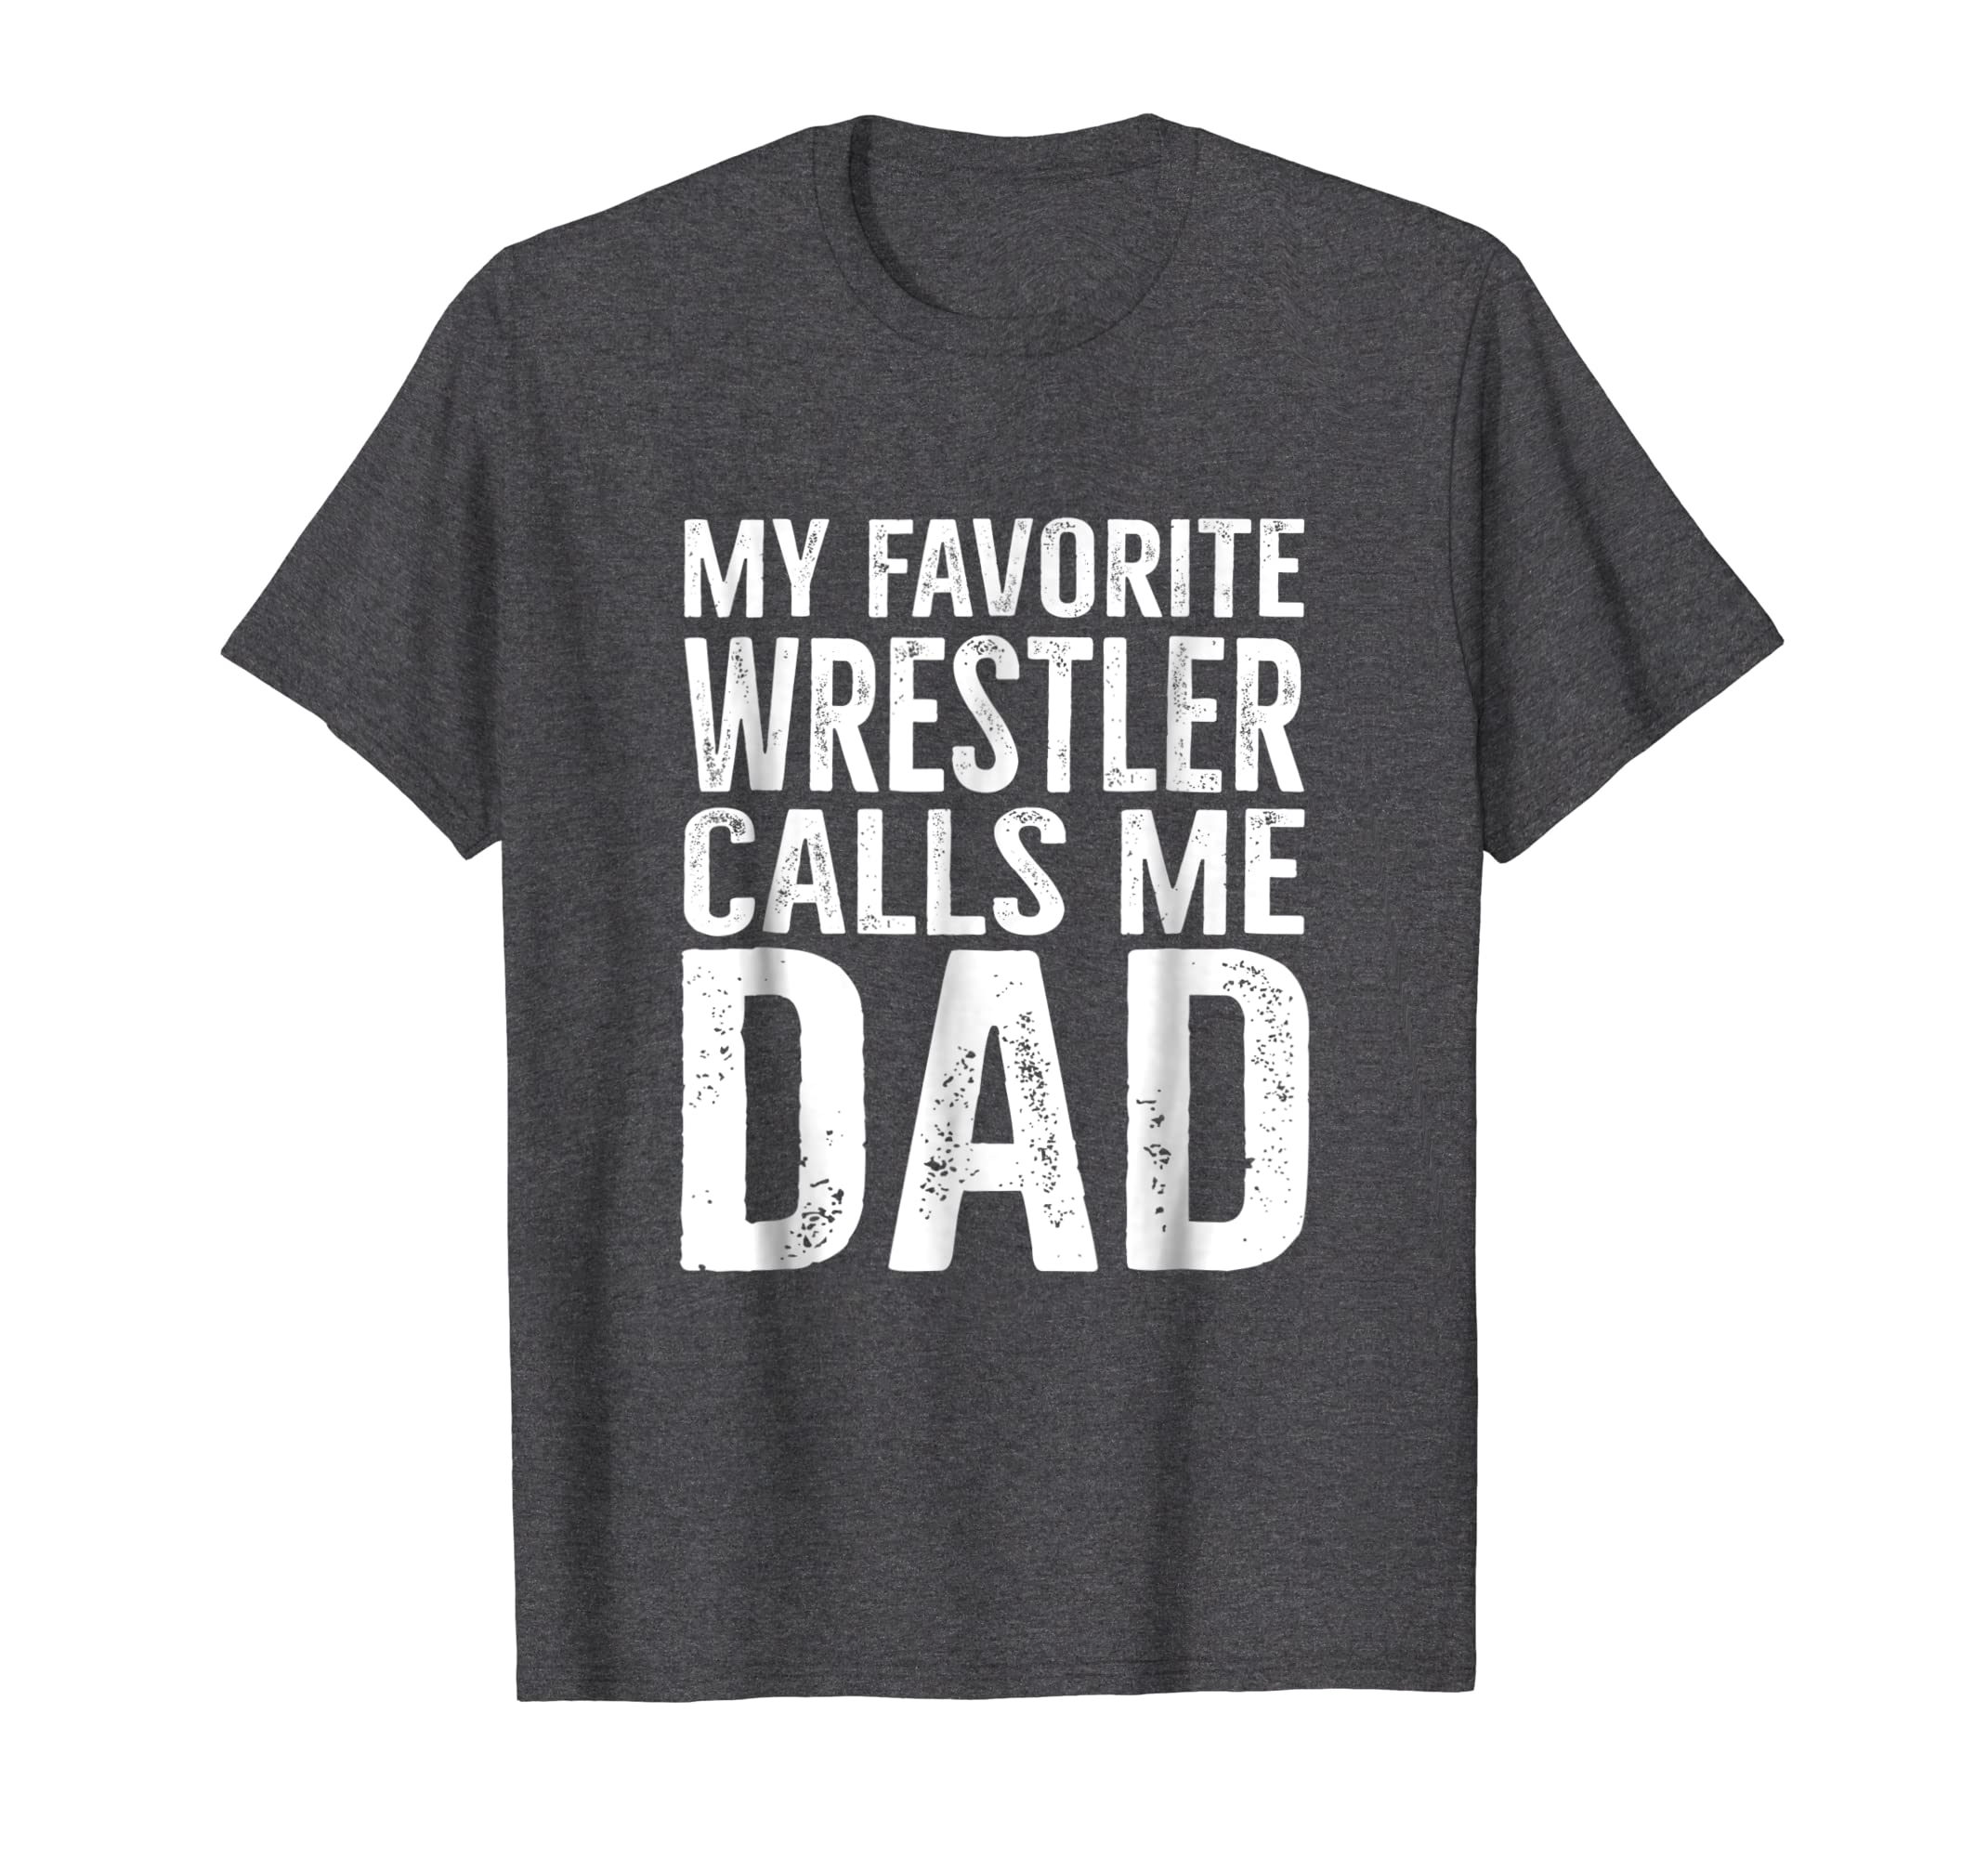 ae4a59190 Amazon.com: Mens My Favorite Wrestler Calls Me Dad T Shirt Funny Father  Gift: Clothing